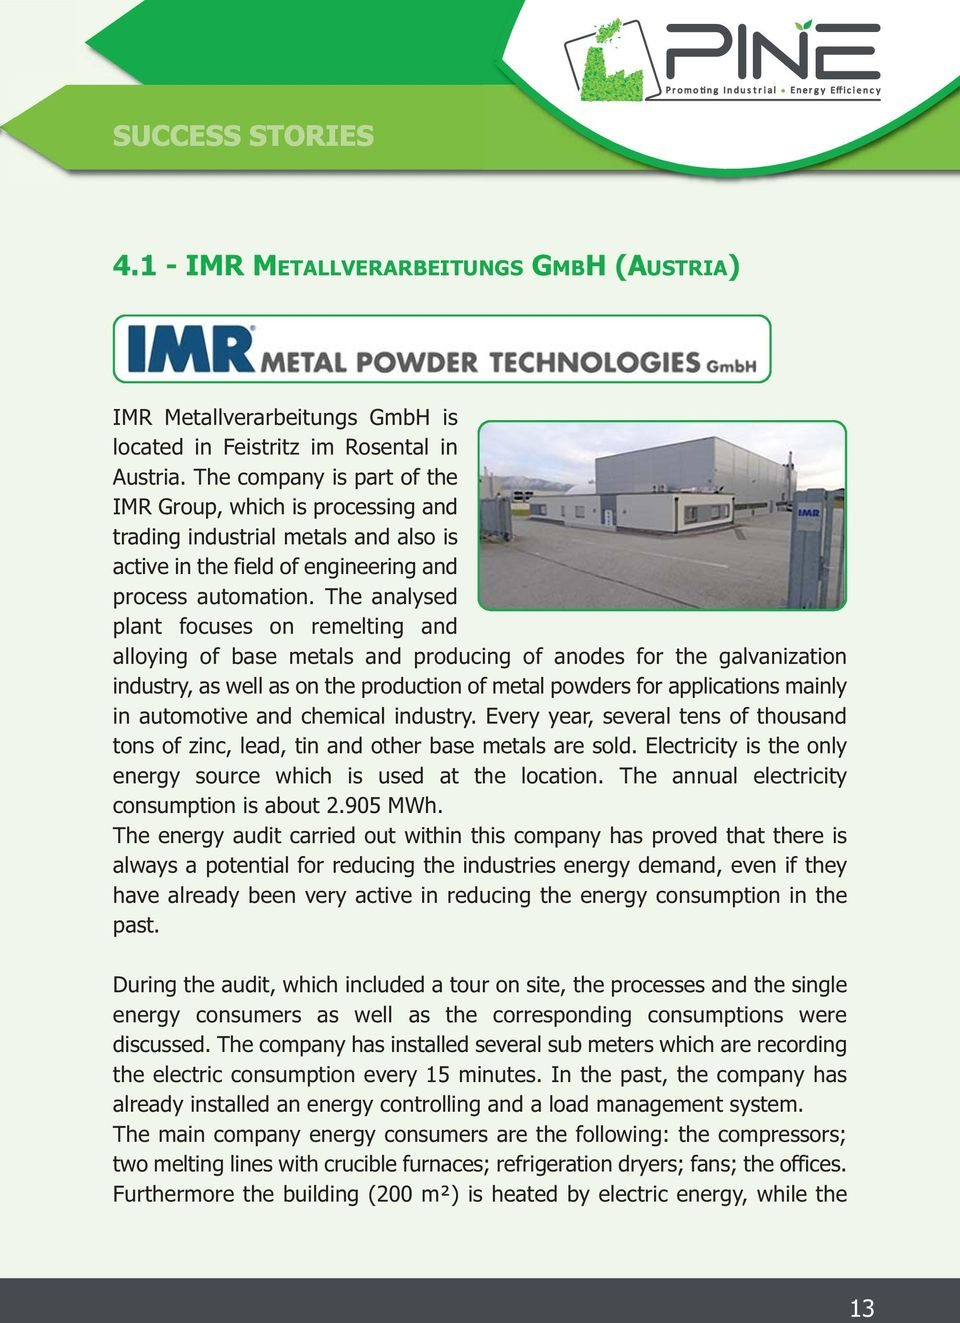 The analysed plant focuses on remelting and alloying of base metals and producing of anodes for the galvanization industry, as well as on the production of metal powders for applications mainly in